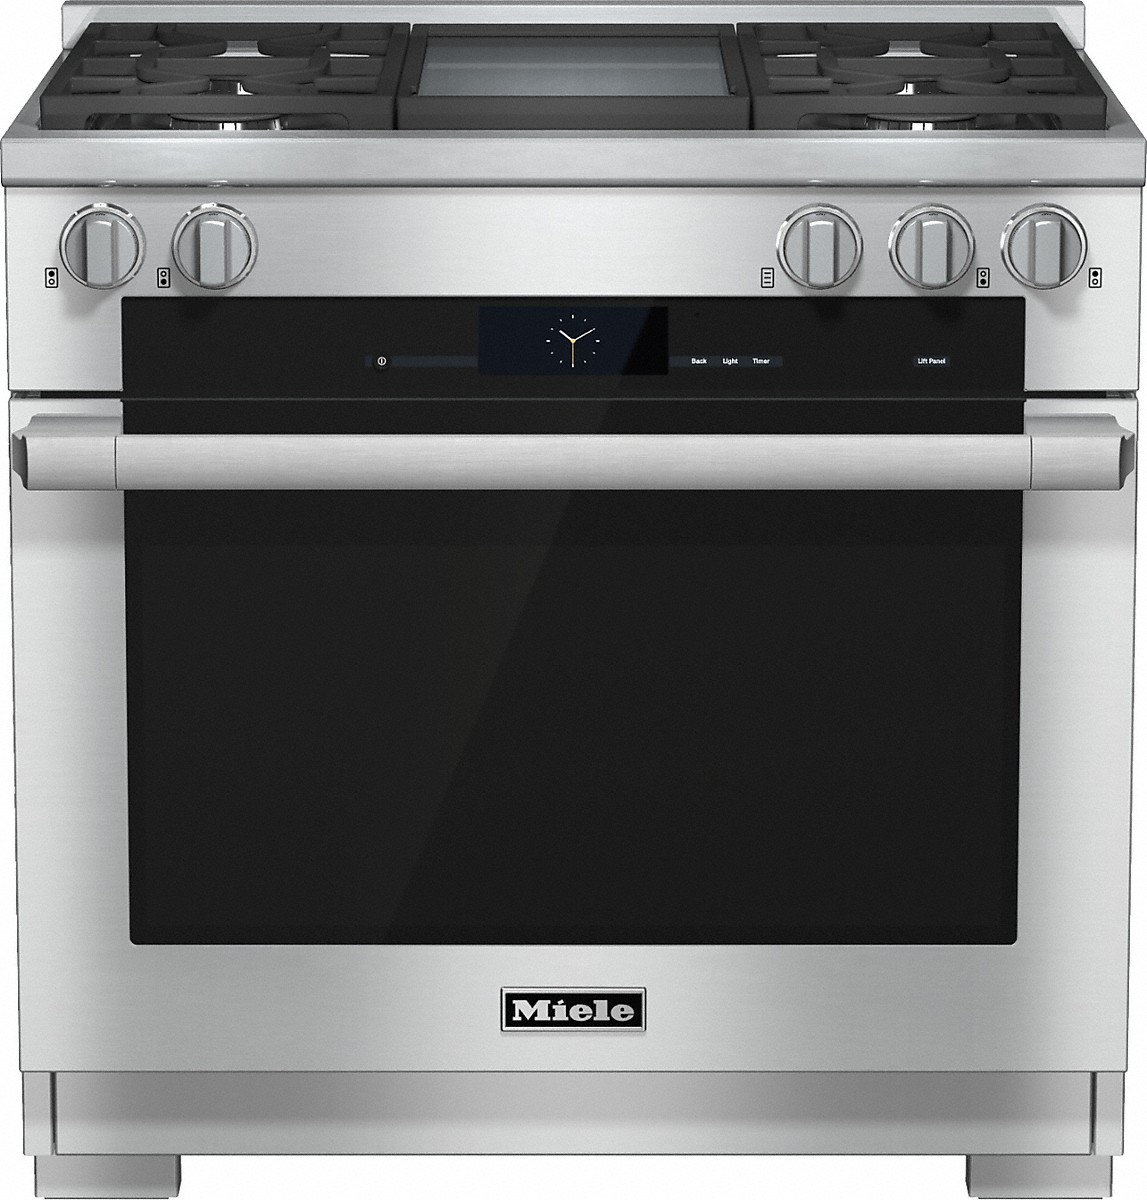 Miele 36 inch range Dual Fuel with M Touch controls, Moisture Plus and M Pro dual stacked burners